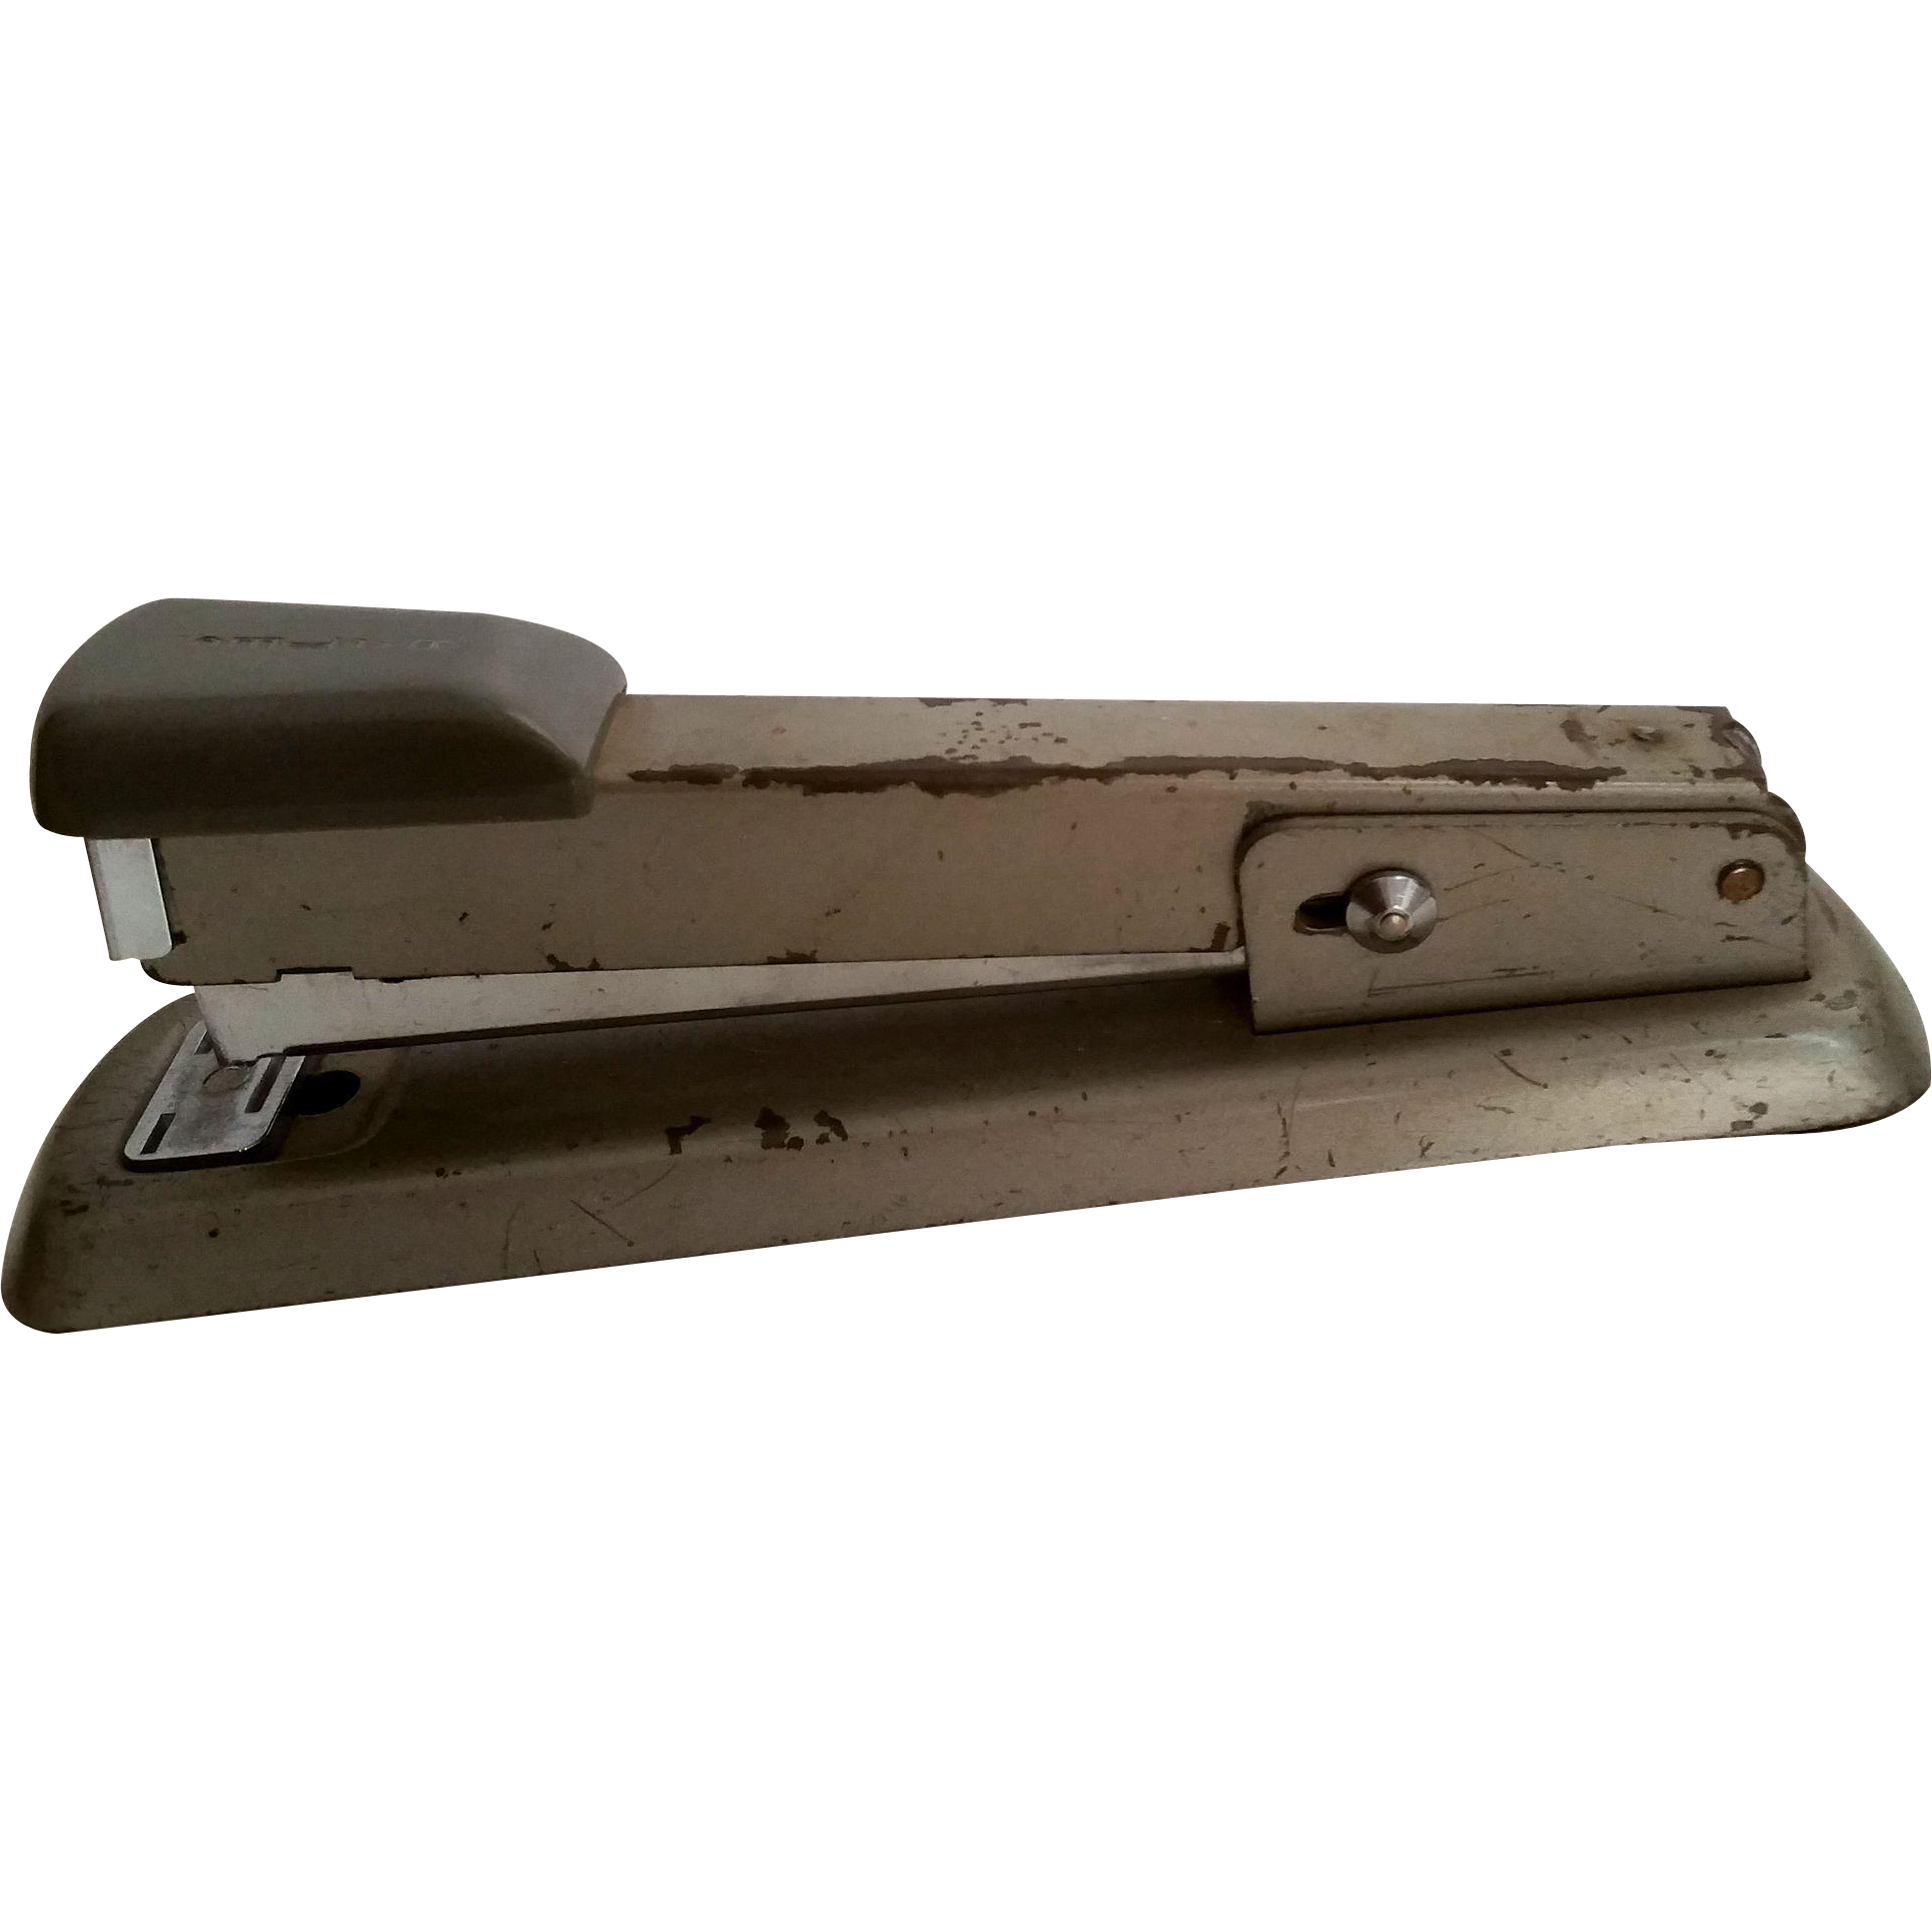 Vintage Bates 56 Stapler Gray Office Supplies Chippy Paint Staple Or Tack